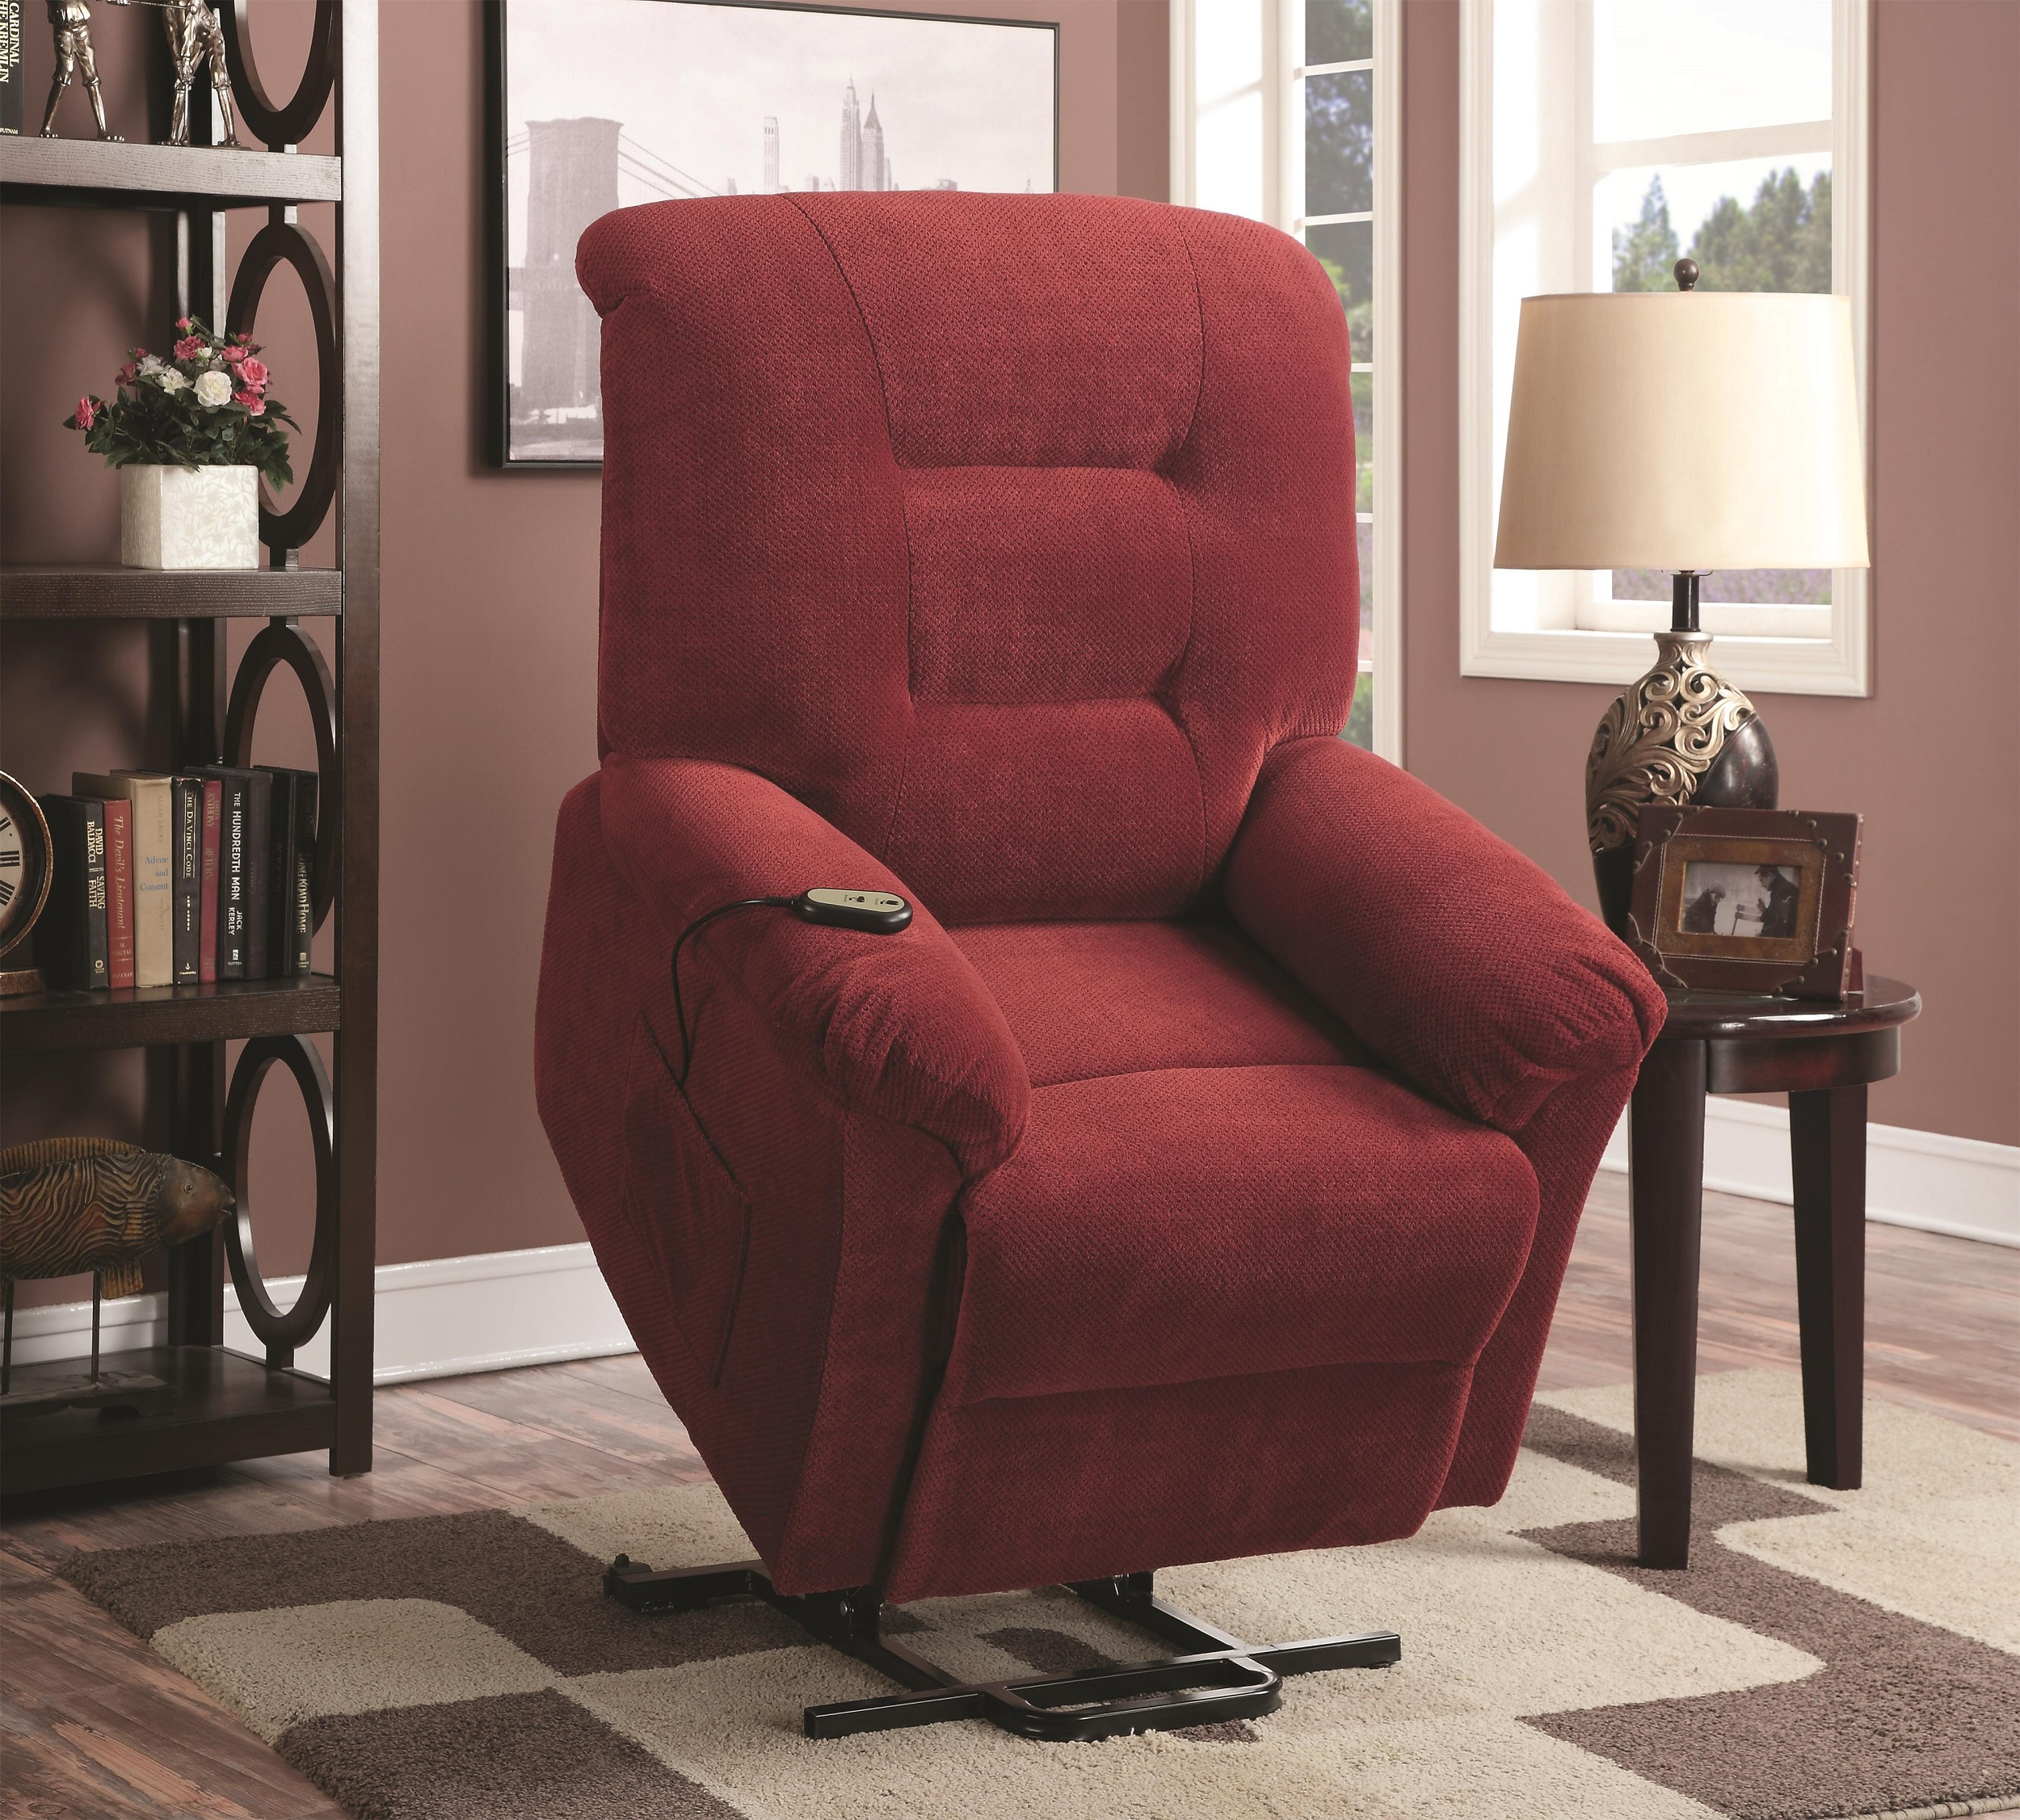 Casual Power Lift Recliner 3 Colors Image